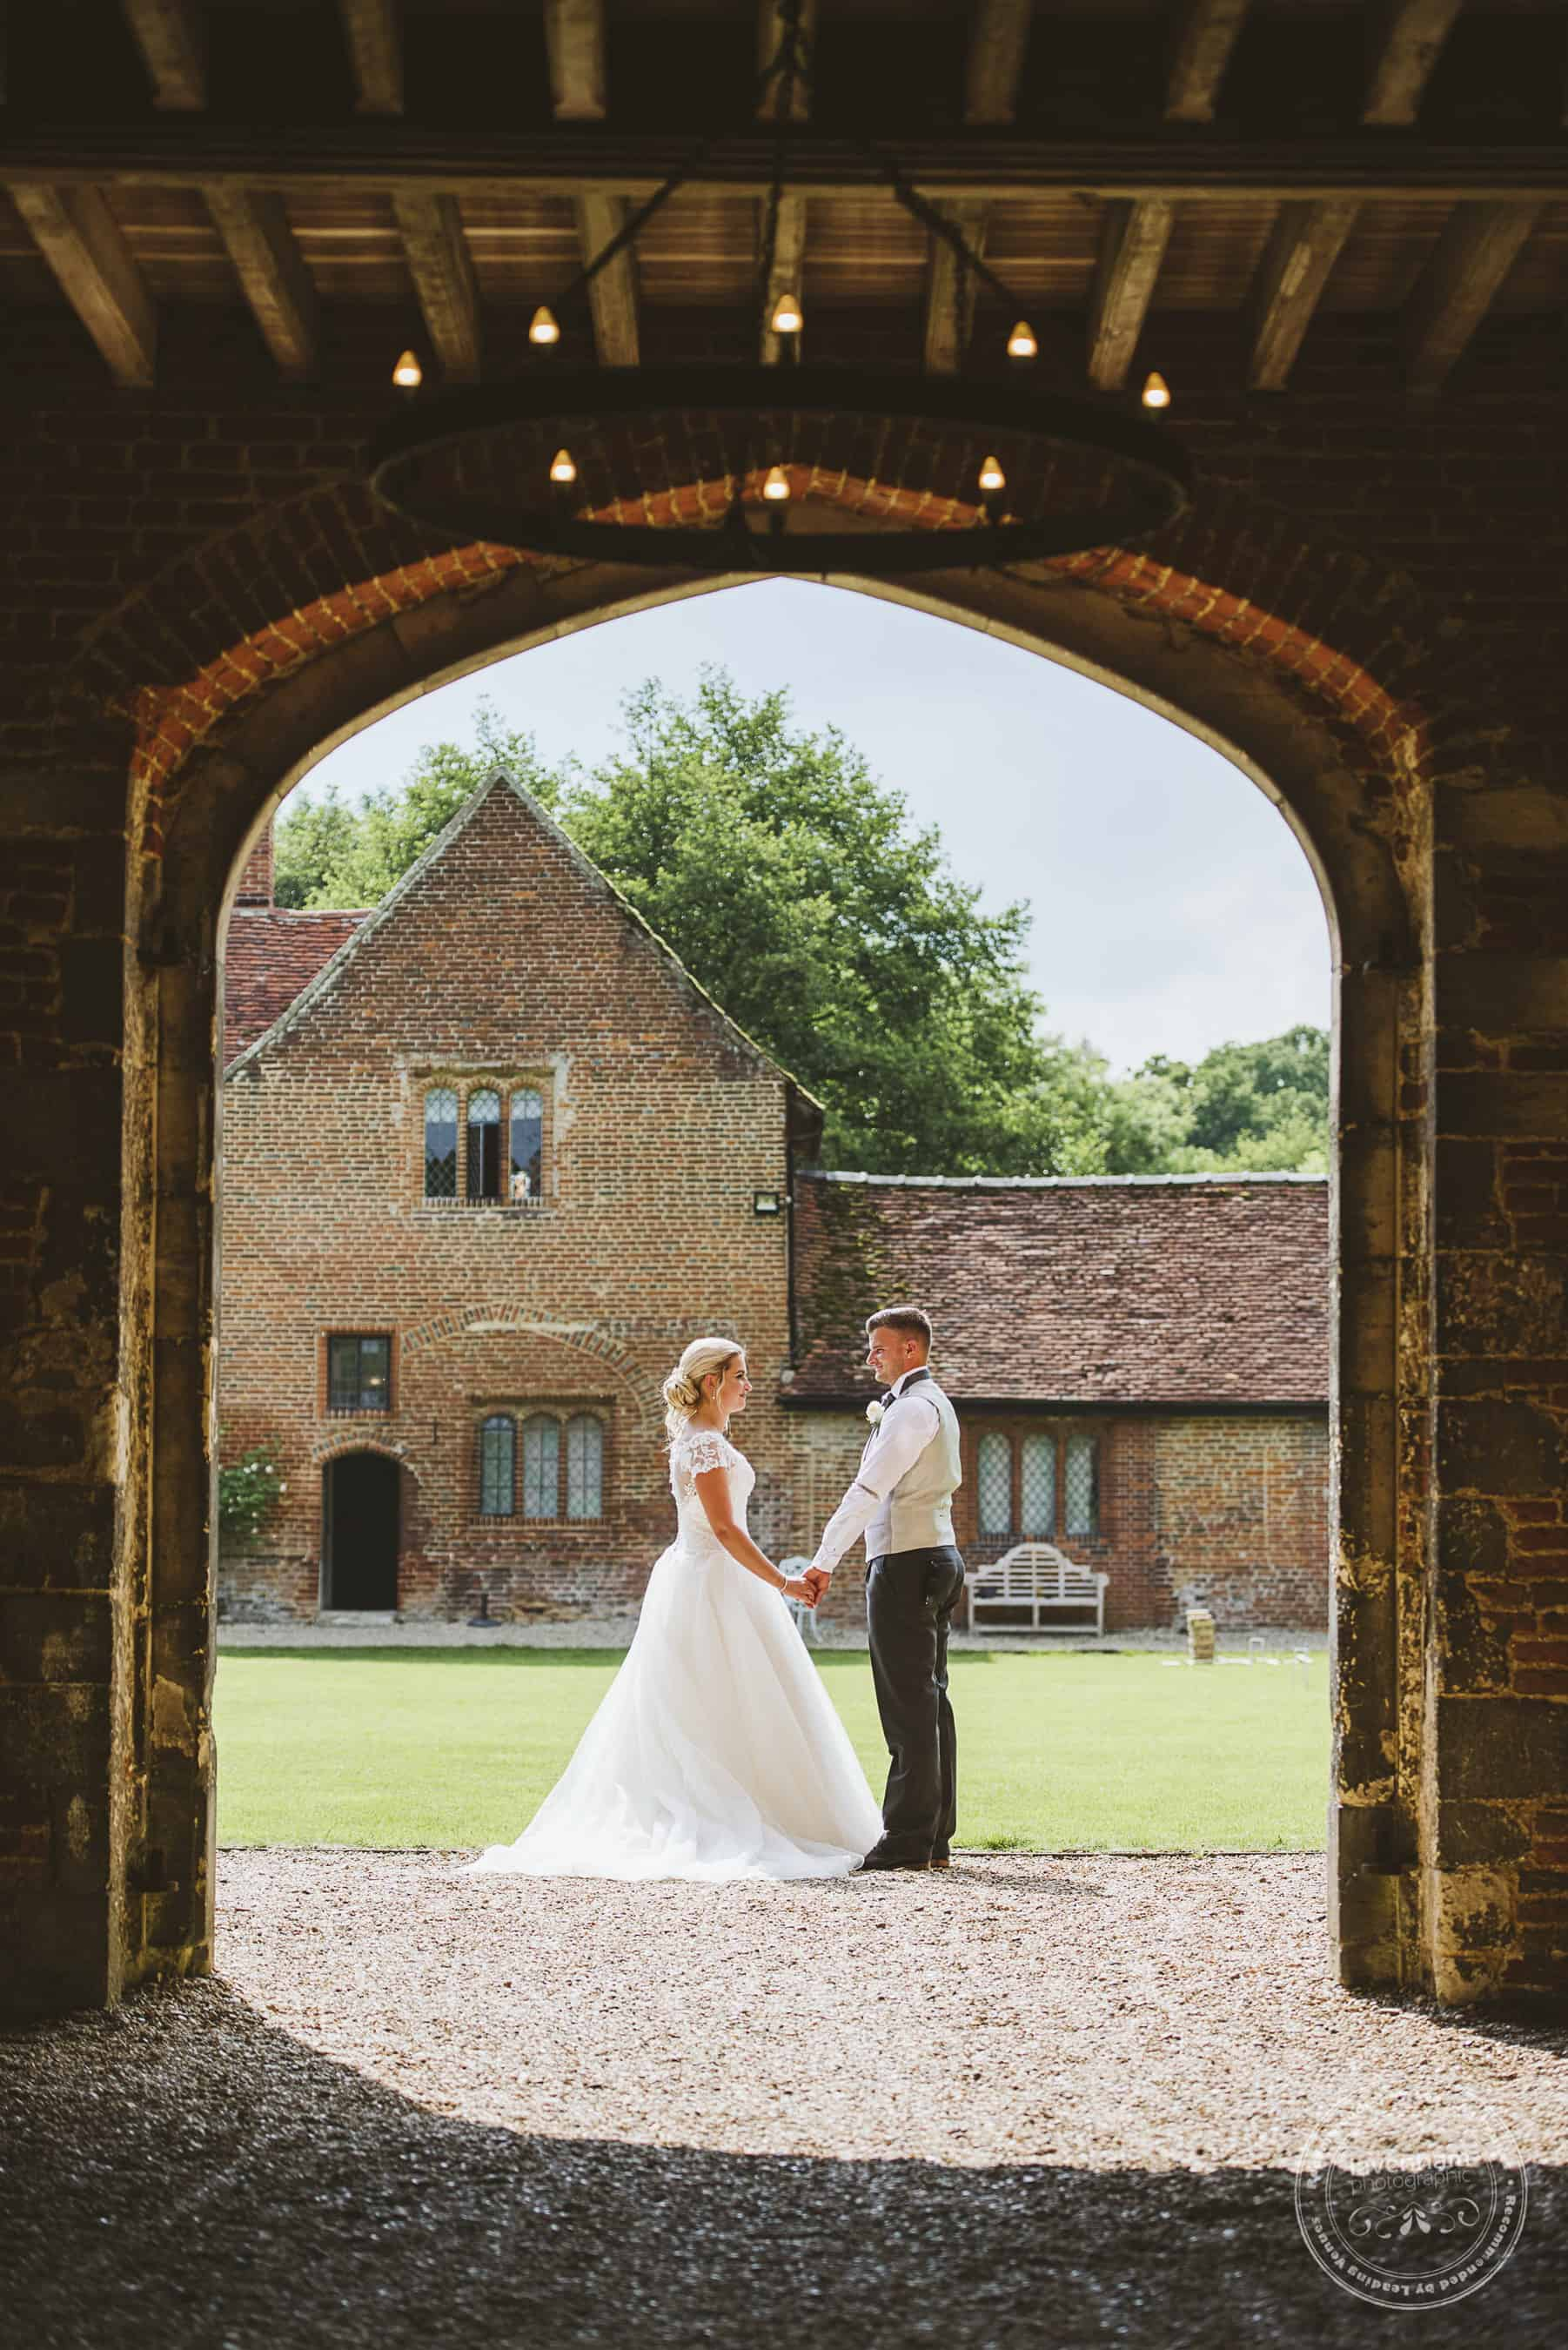 030618 Leez Priory Wedding Photography Lavenham Photographic 075